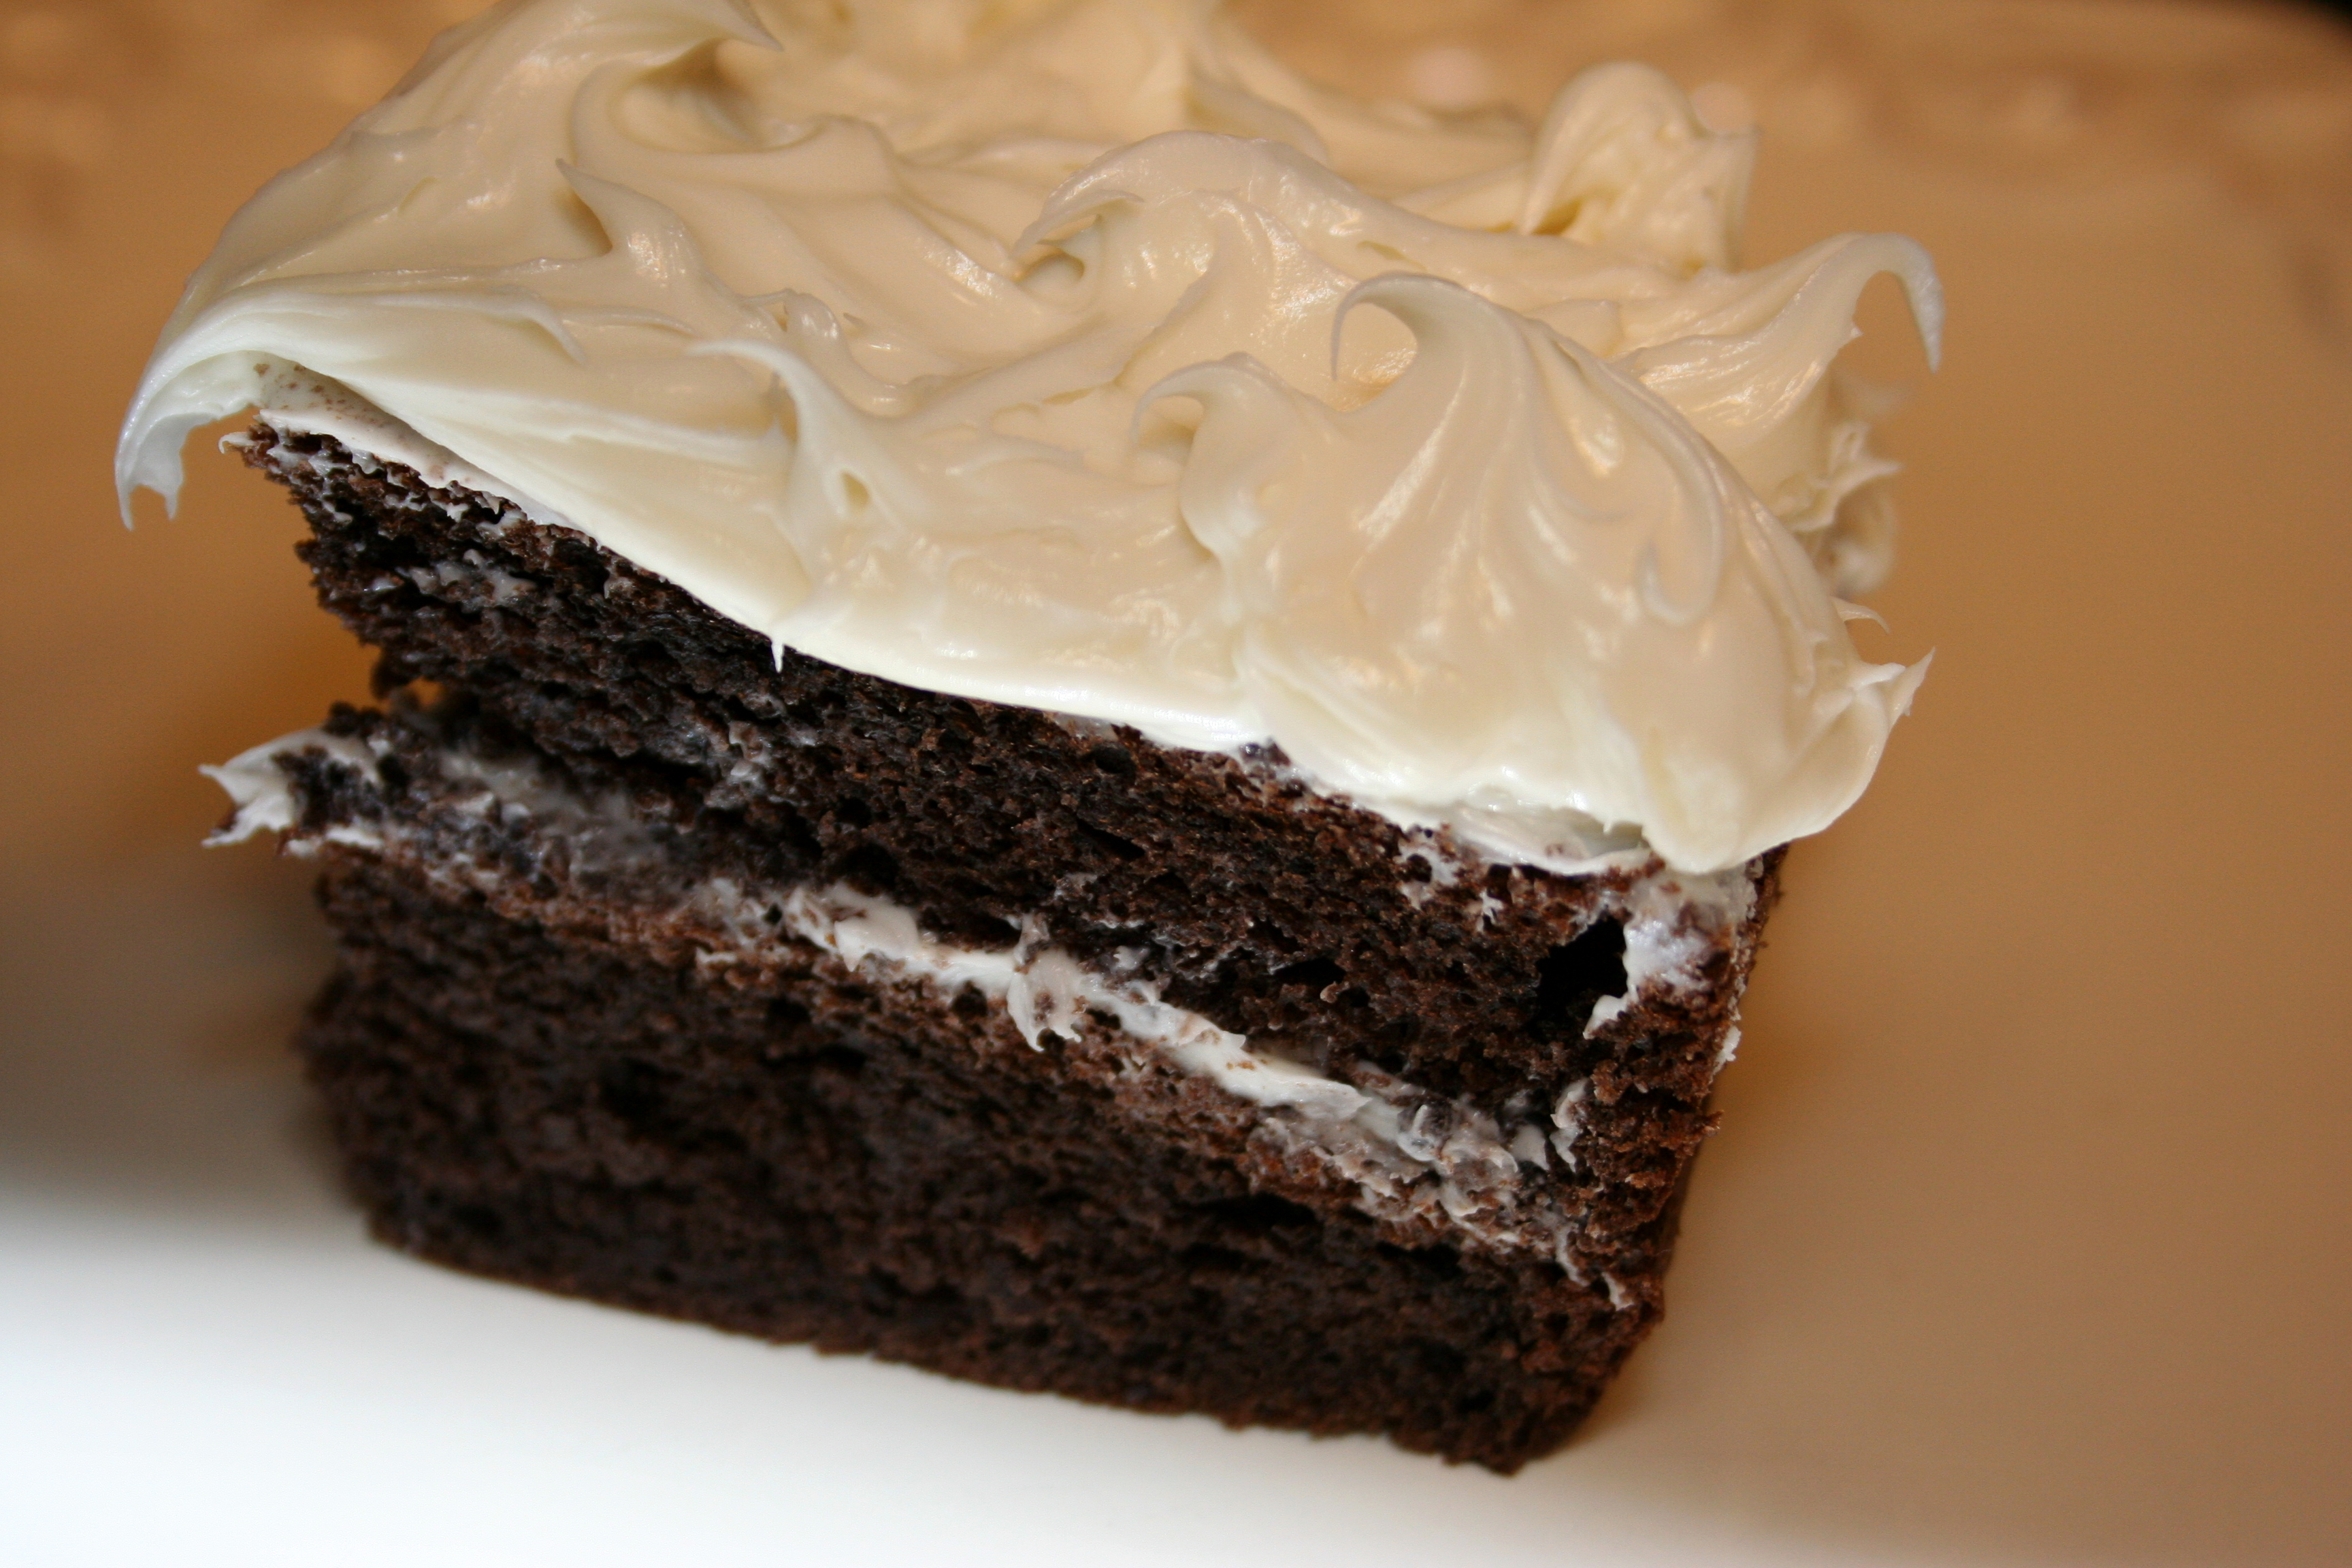 File:Chocolate cake with white icing.JPG - Wikipedia, the free ...